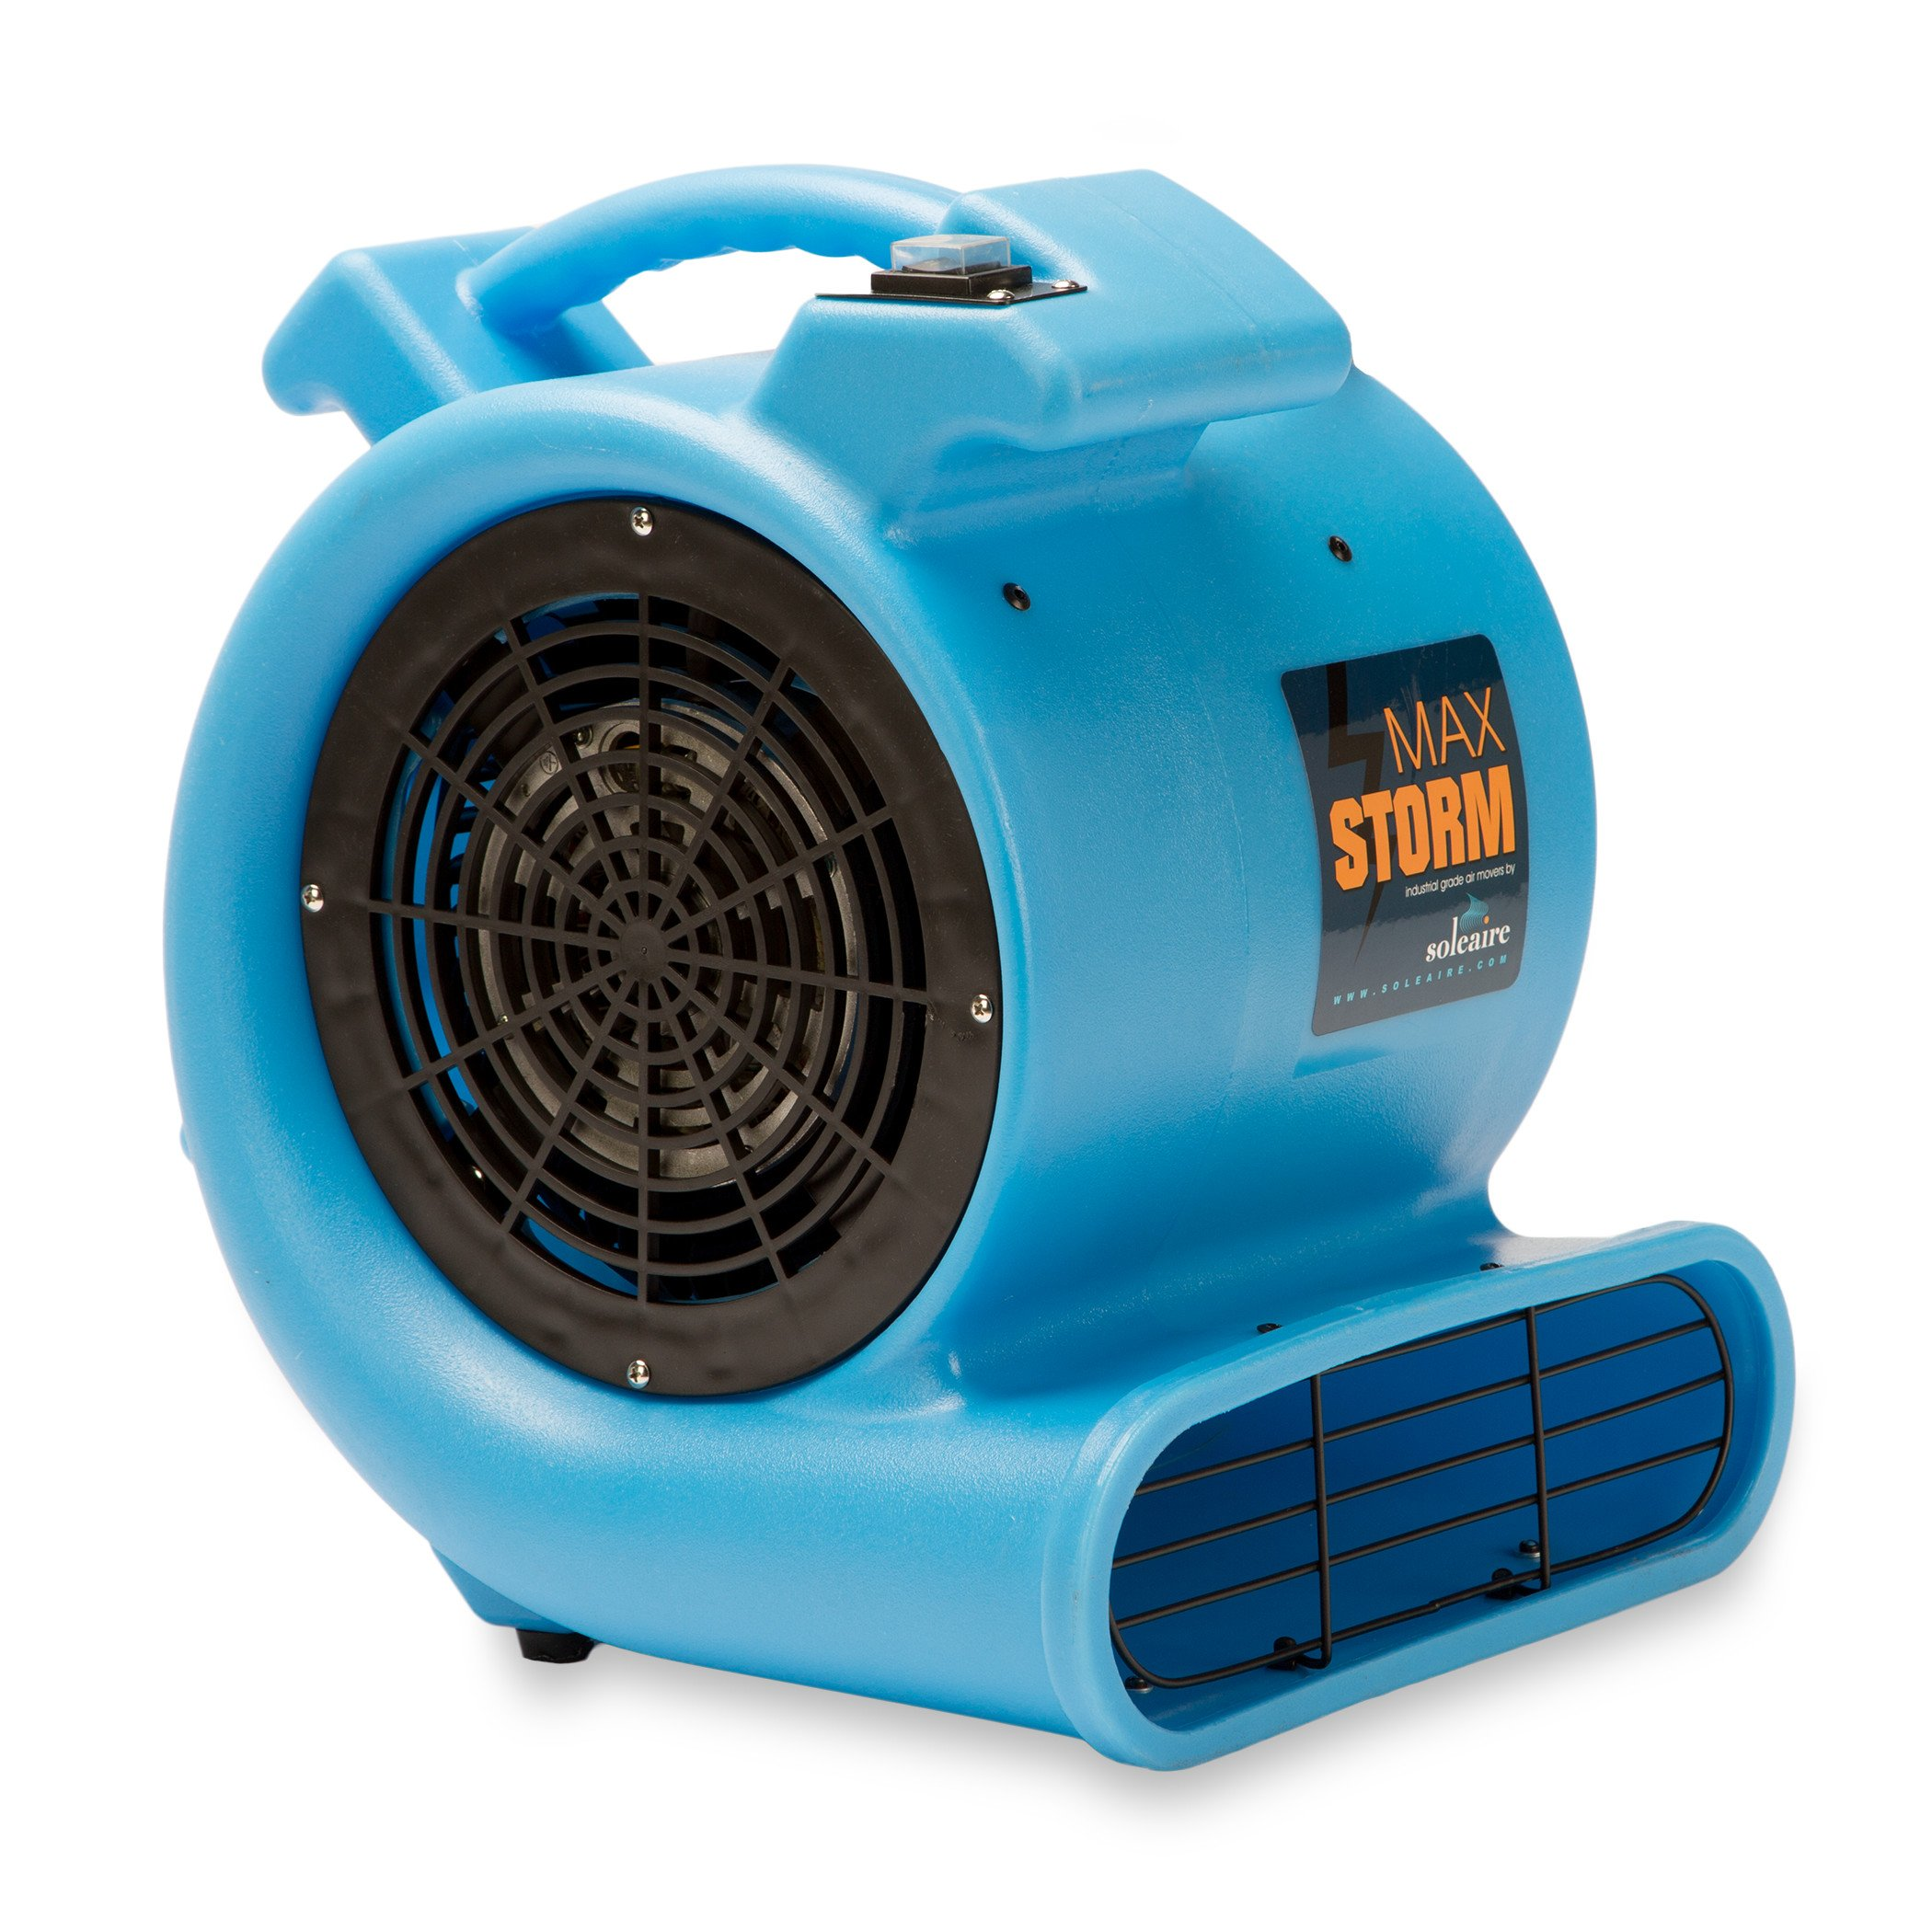 Max Storm 1/2 HP Durable Lightweight Air Mover Carpet Dryer Blower Floor Fan for Pro Janitorial, Blue by Soleaire (Image #1)